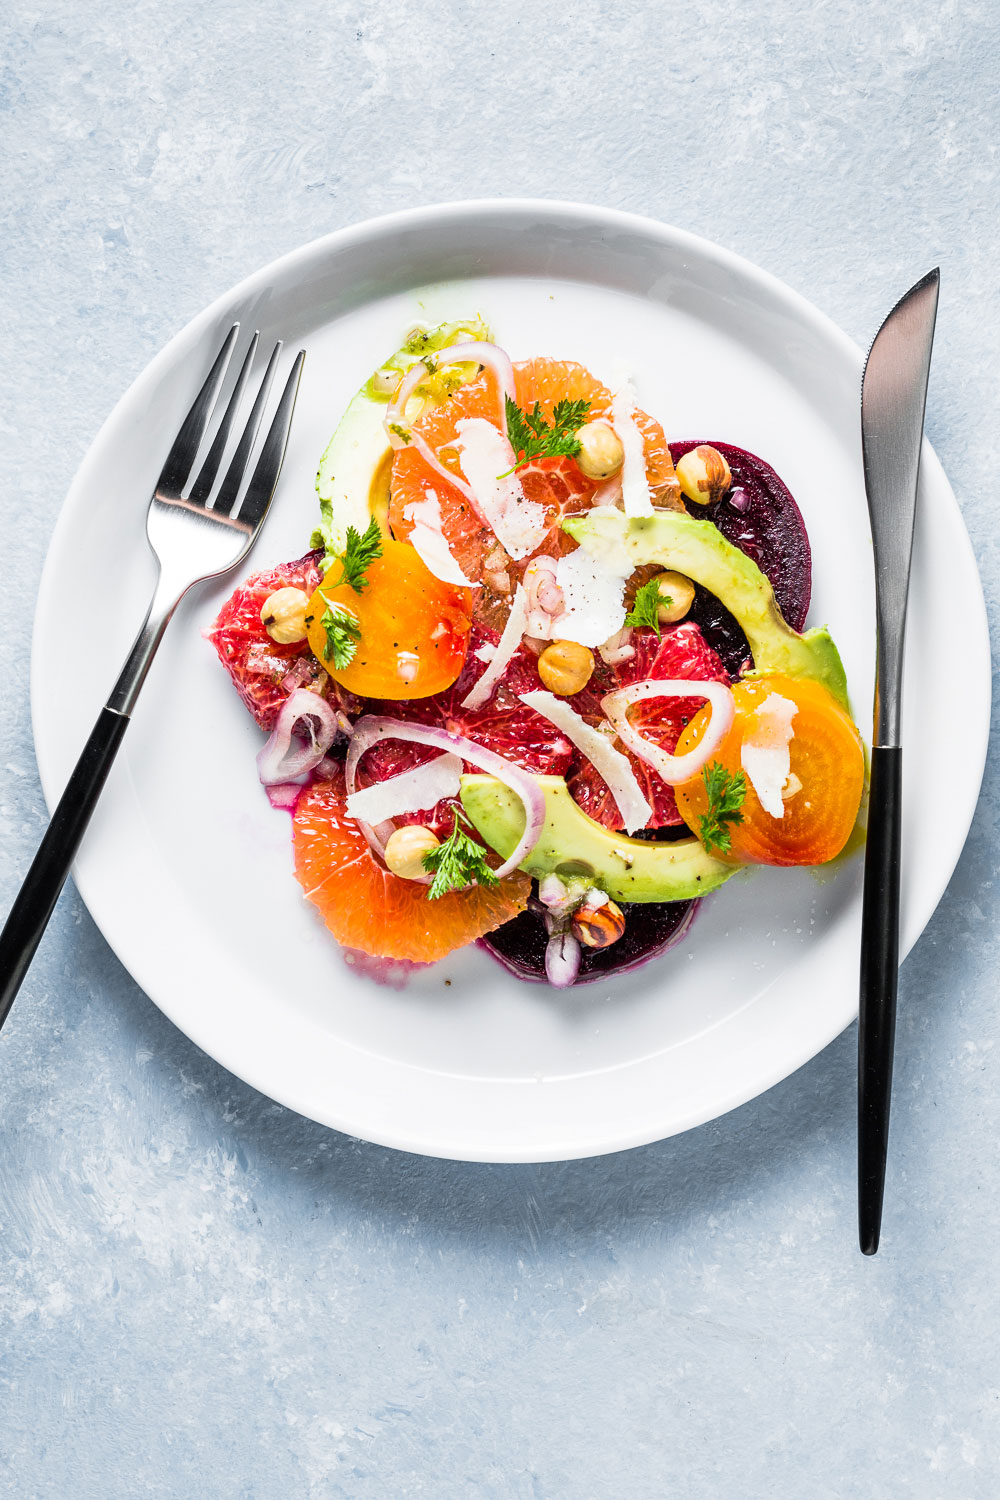 Citrus Beet and Avocado Salad with fork and knife